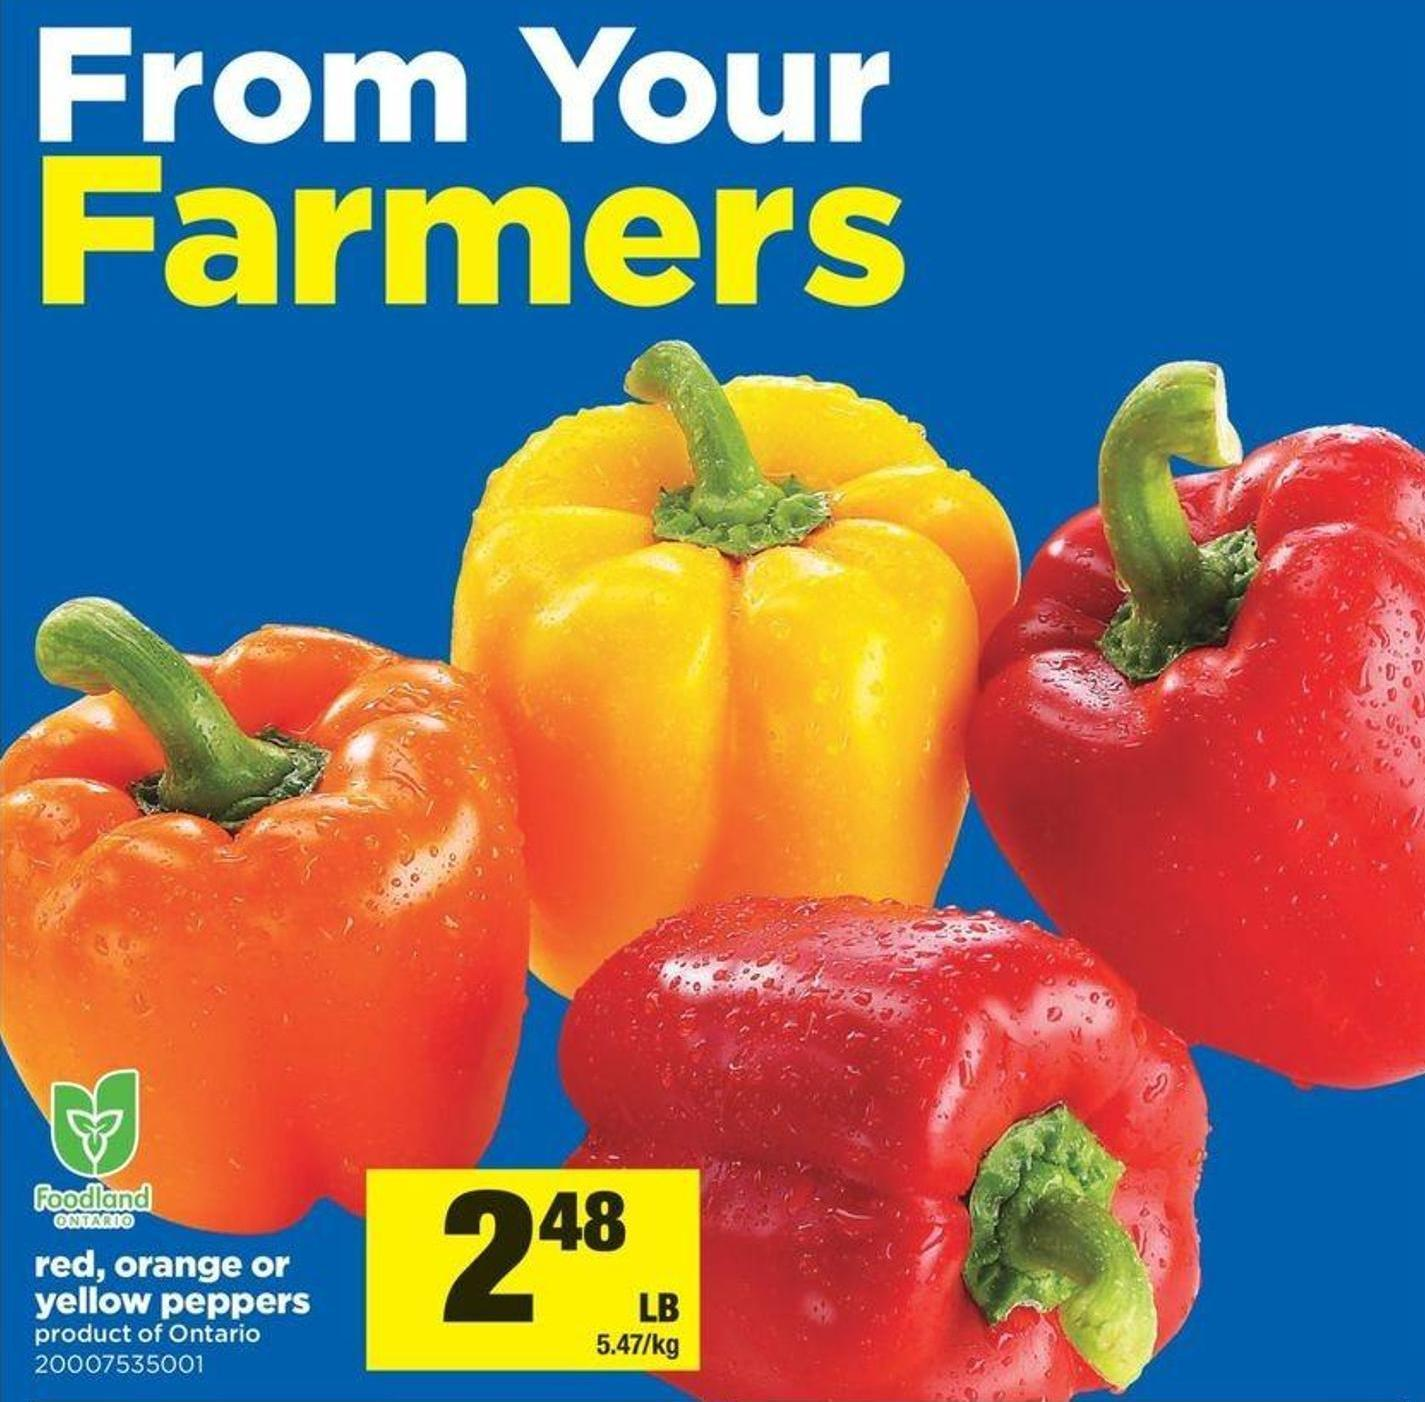 Red - Orange Or Yellow Peppers